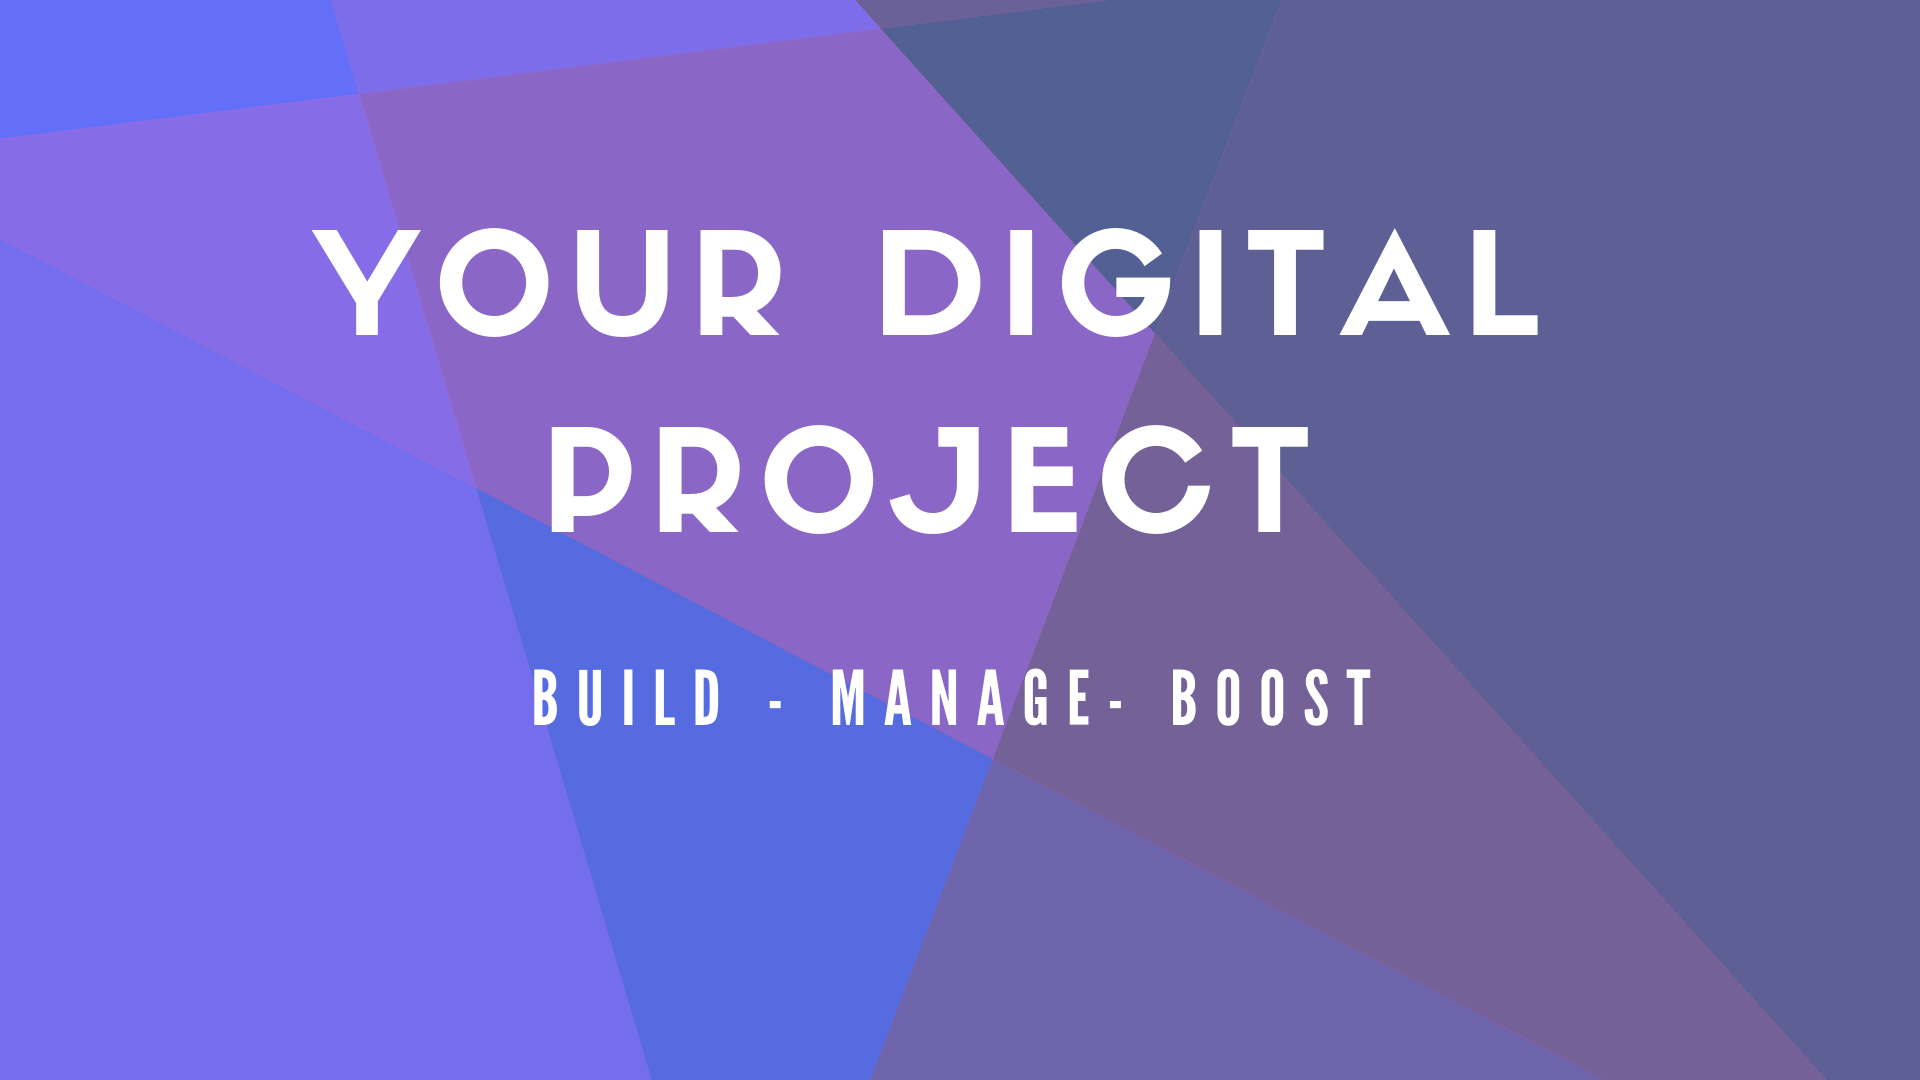 You Digital Project